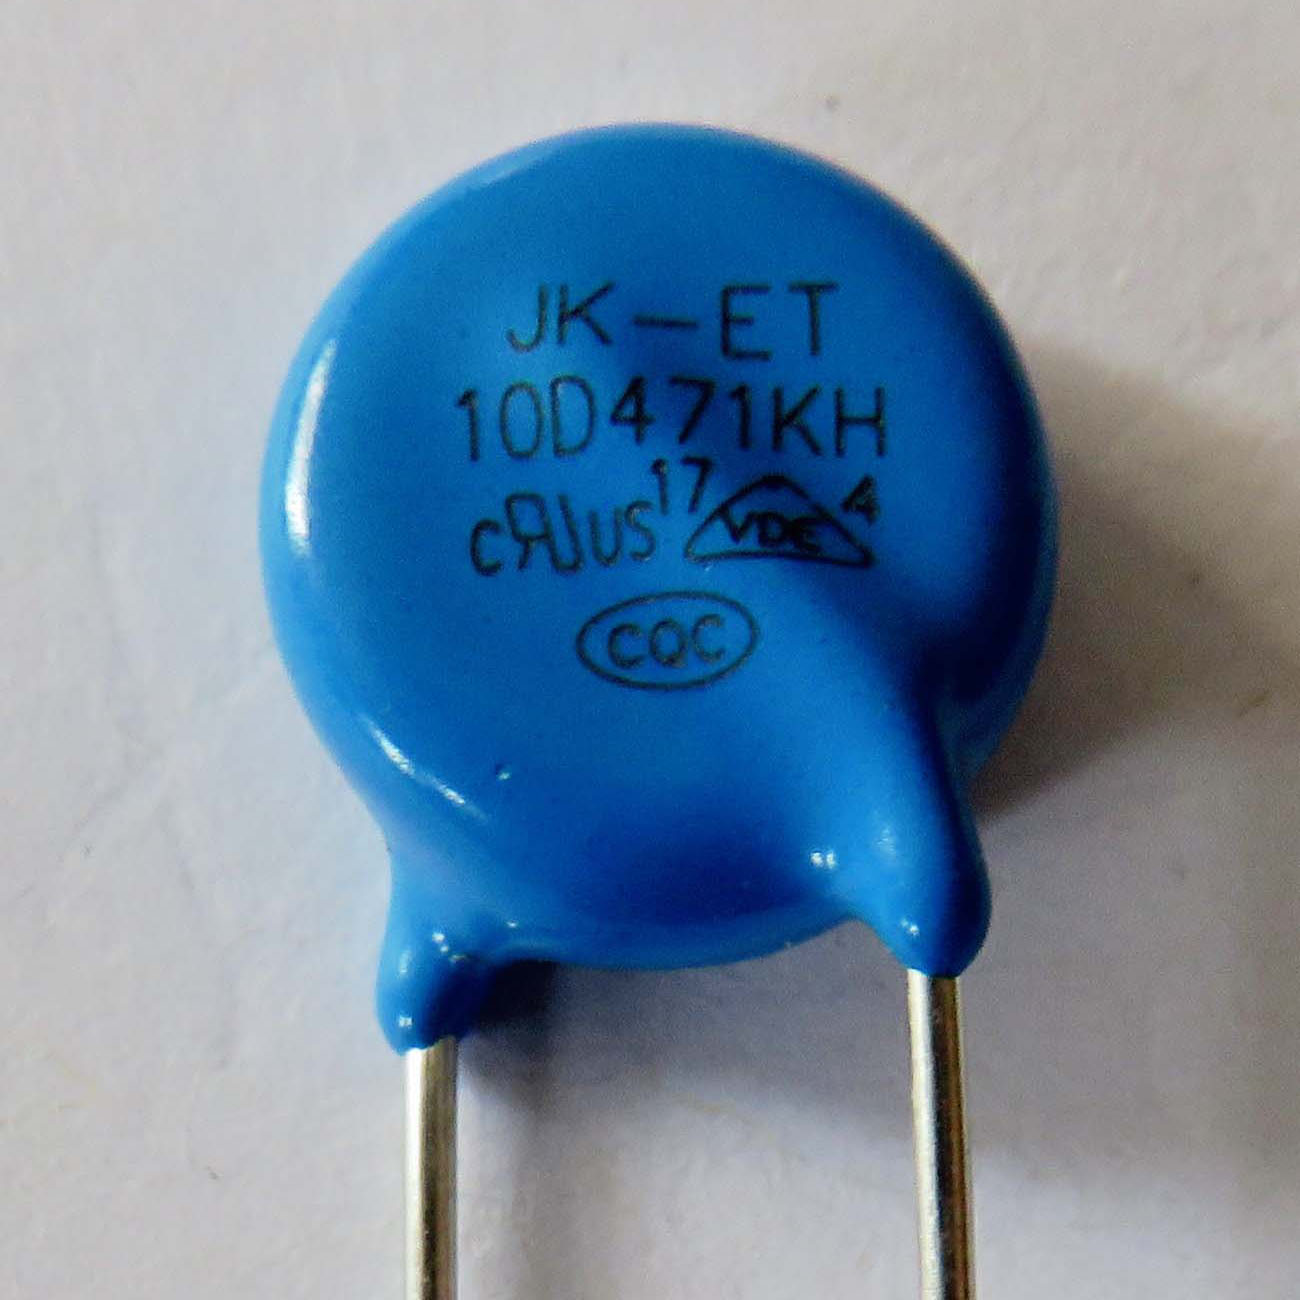 Metal Oxide Varistor for circuit surge protection 470V +-10% tolerance